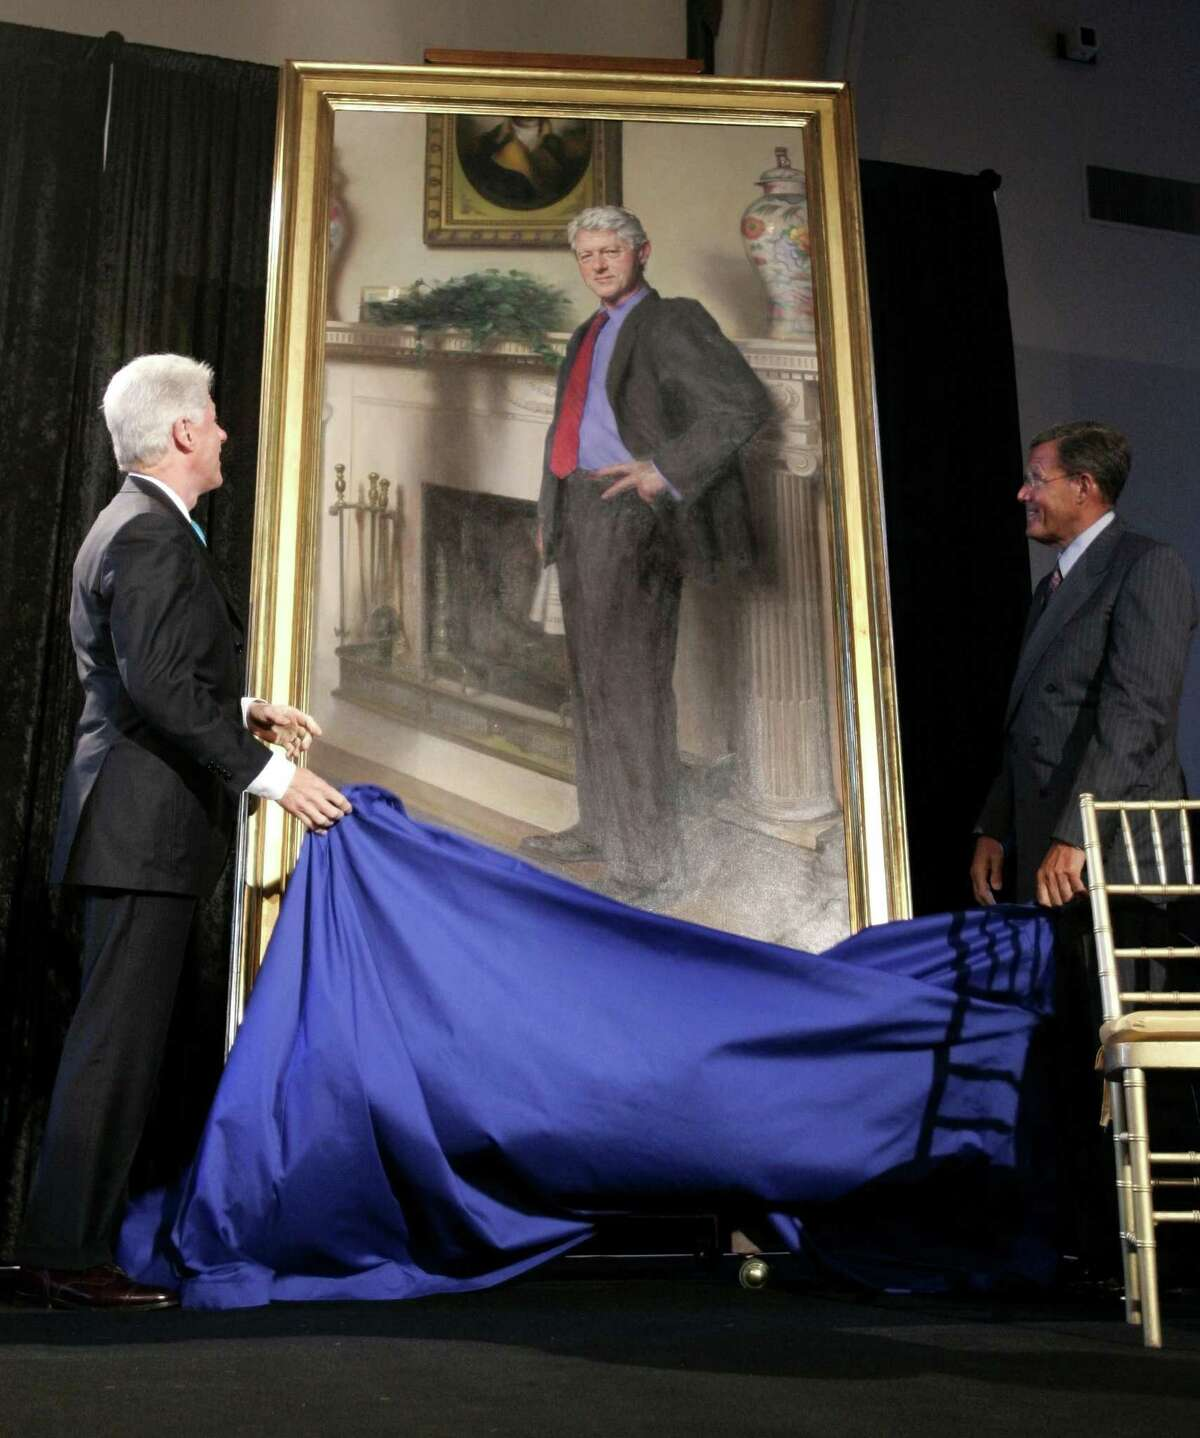 This file photo shows former President Bill Clinton, left, looking up at his portrait which is now in storage at the Smithsonian Institution. A Philadelphia artist says that his museum portrait of former President Clinton contains a shadow reference to Monica Lewinsky's infamous blue dress.